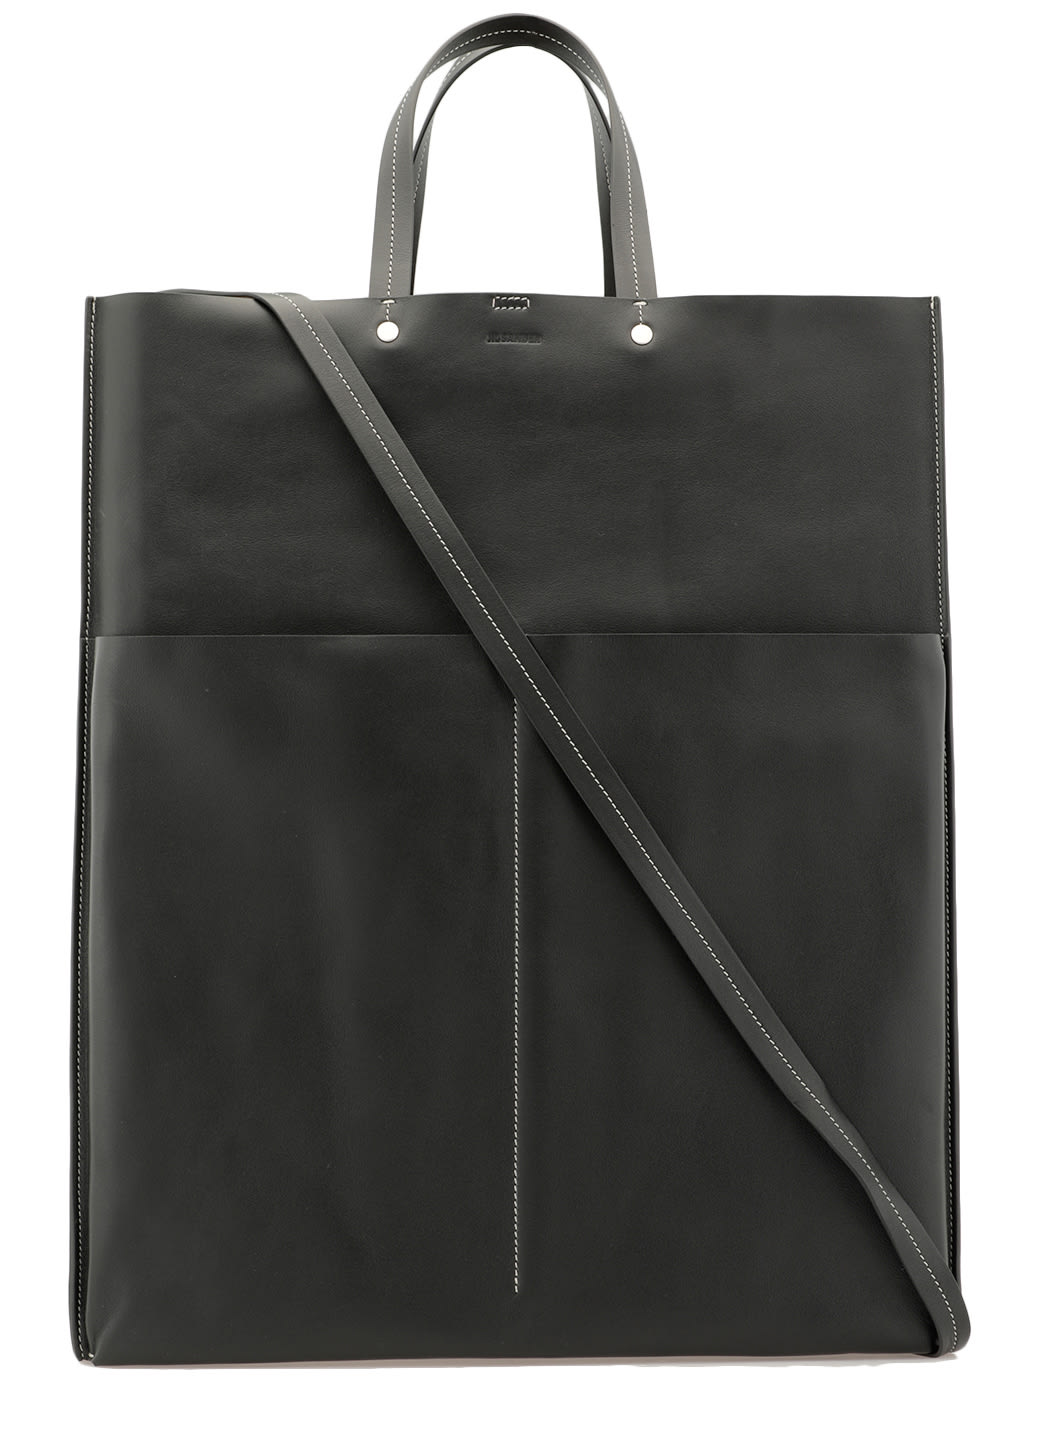 Jil Sander LEATHER TOTE BAG